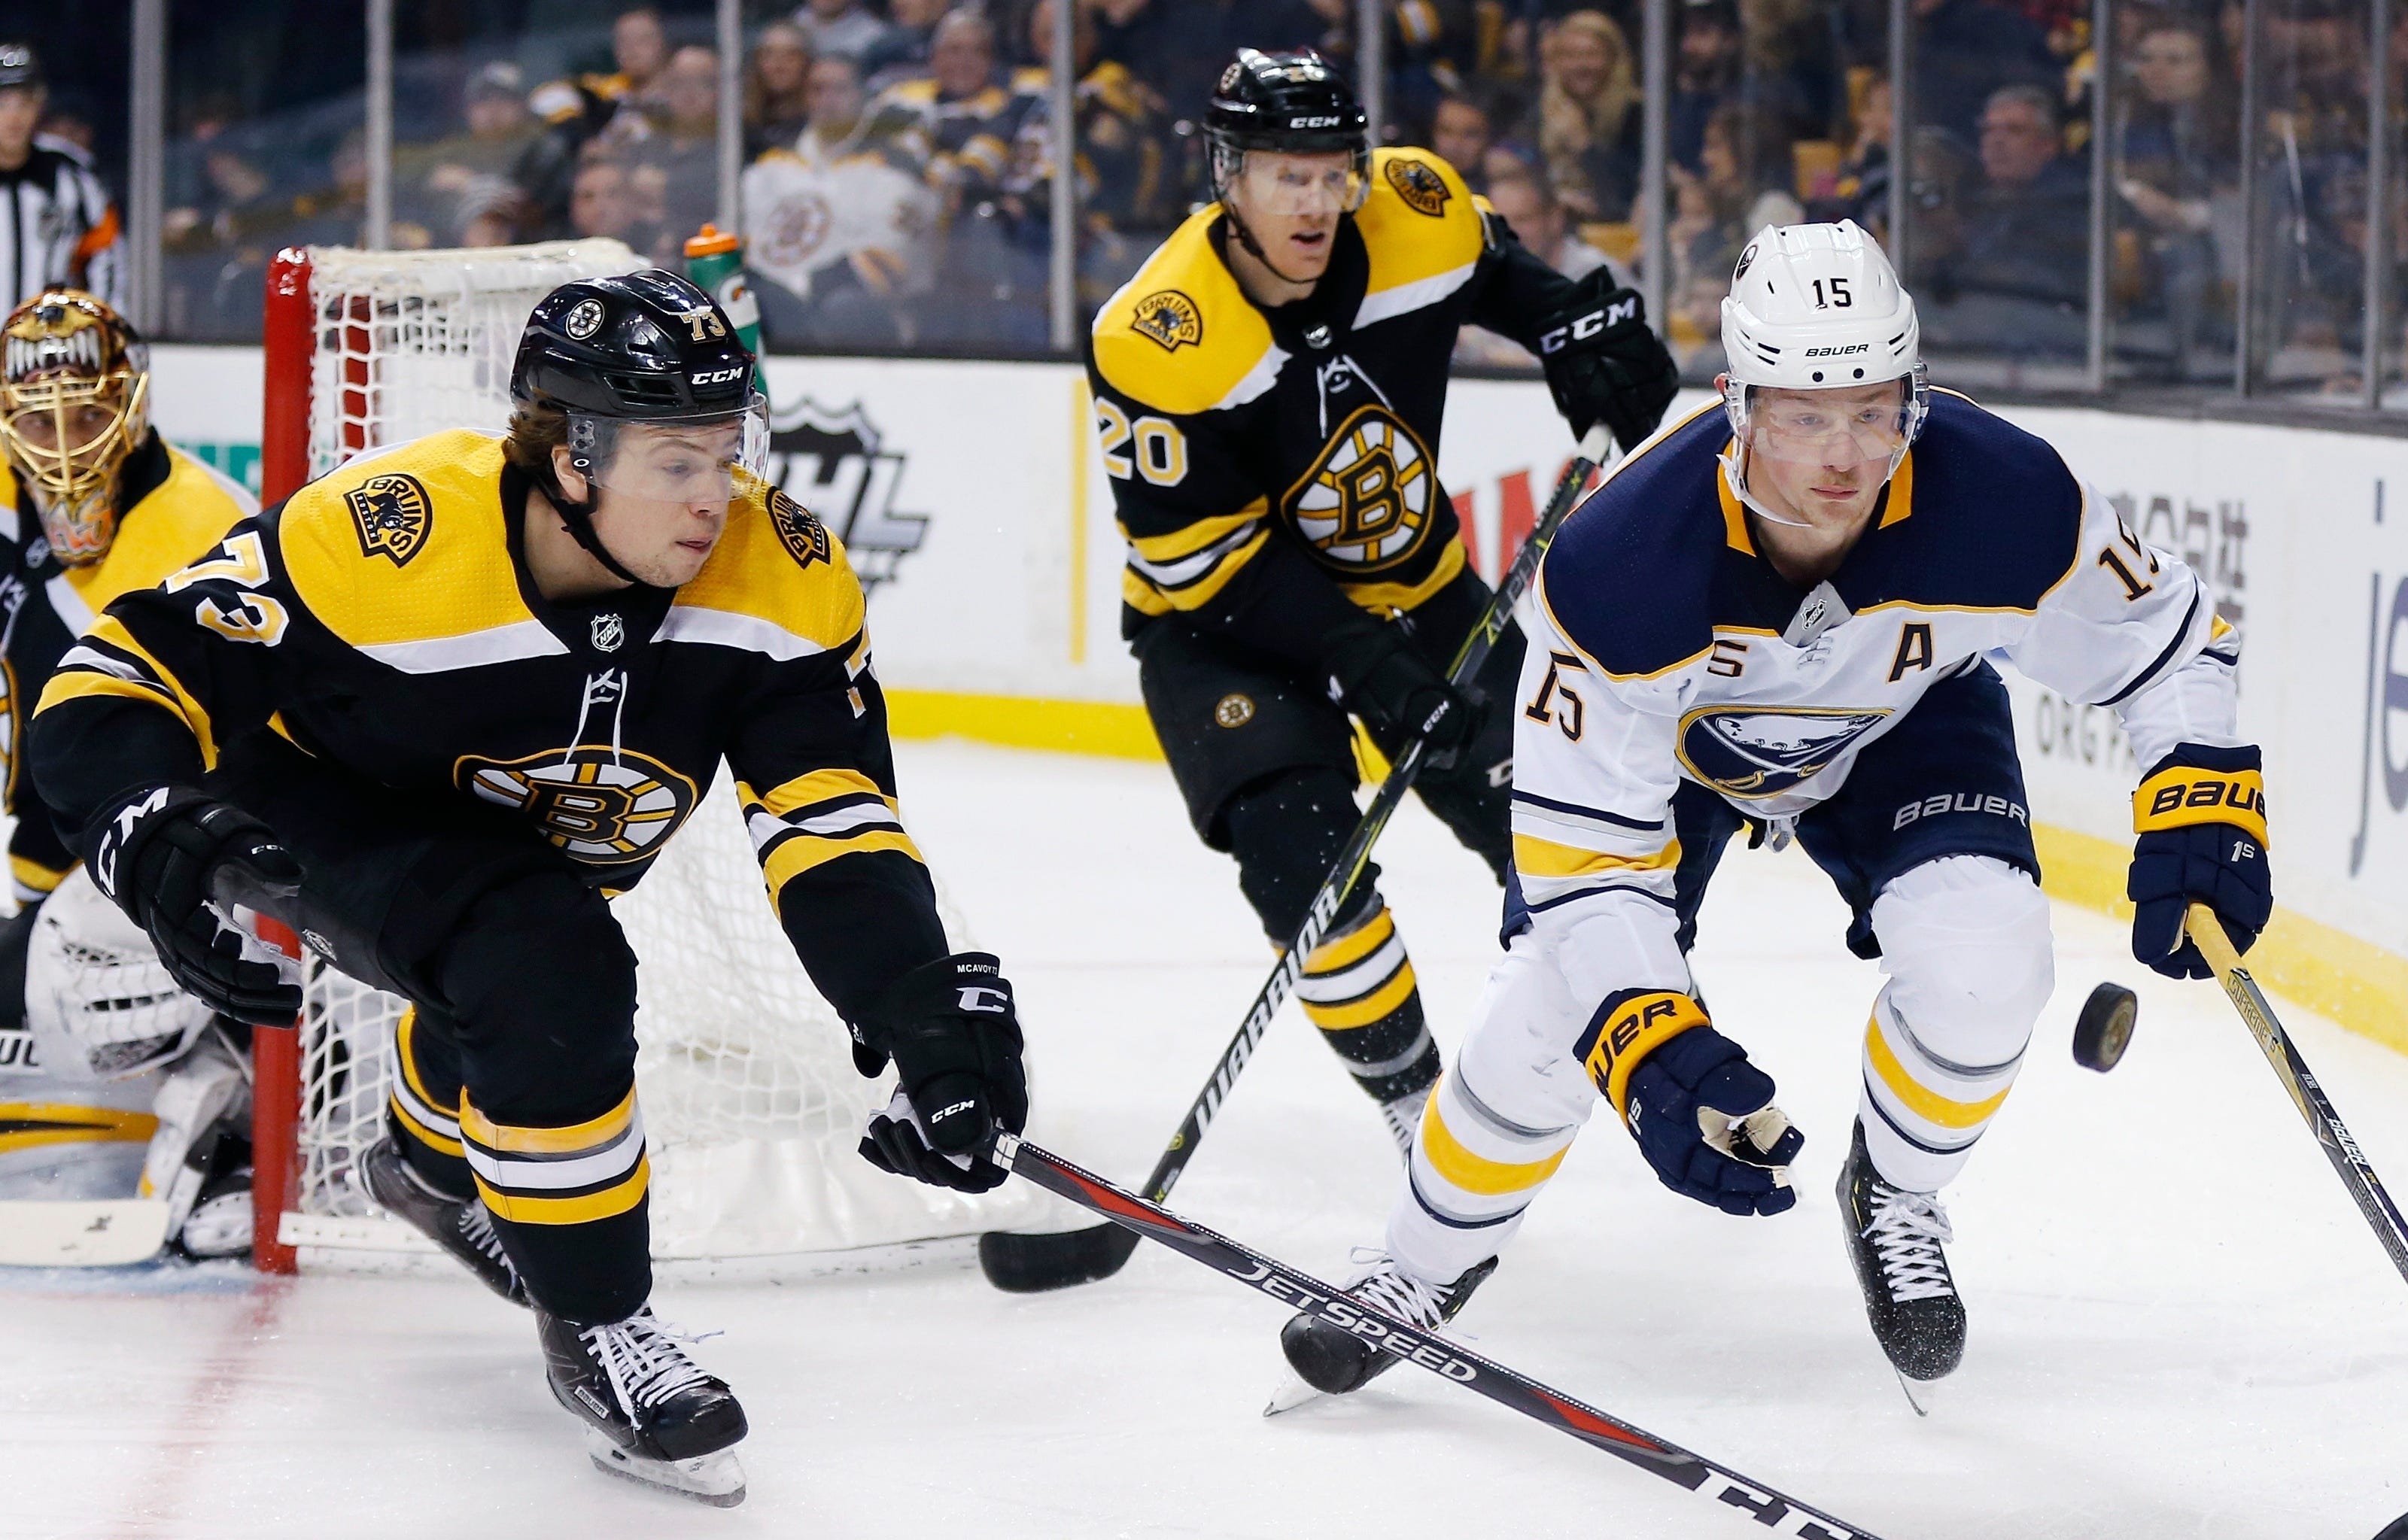 Sabres' Jack Eichel out indefinitely with sprained ankle